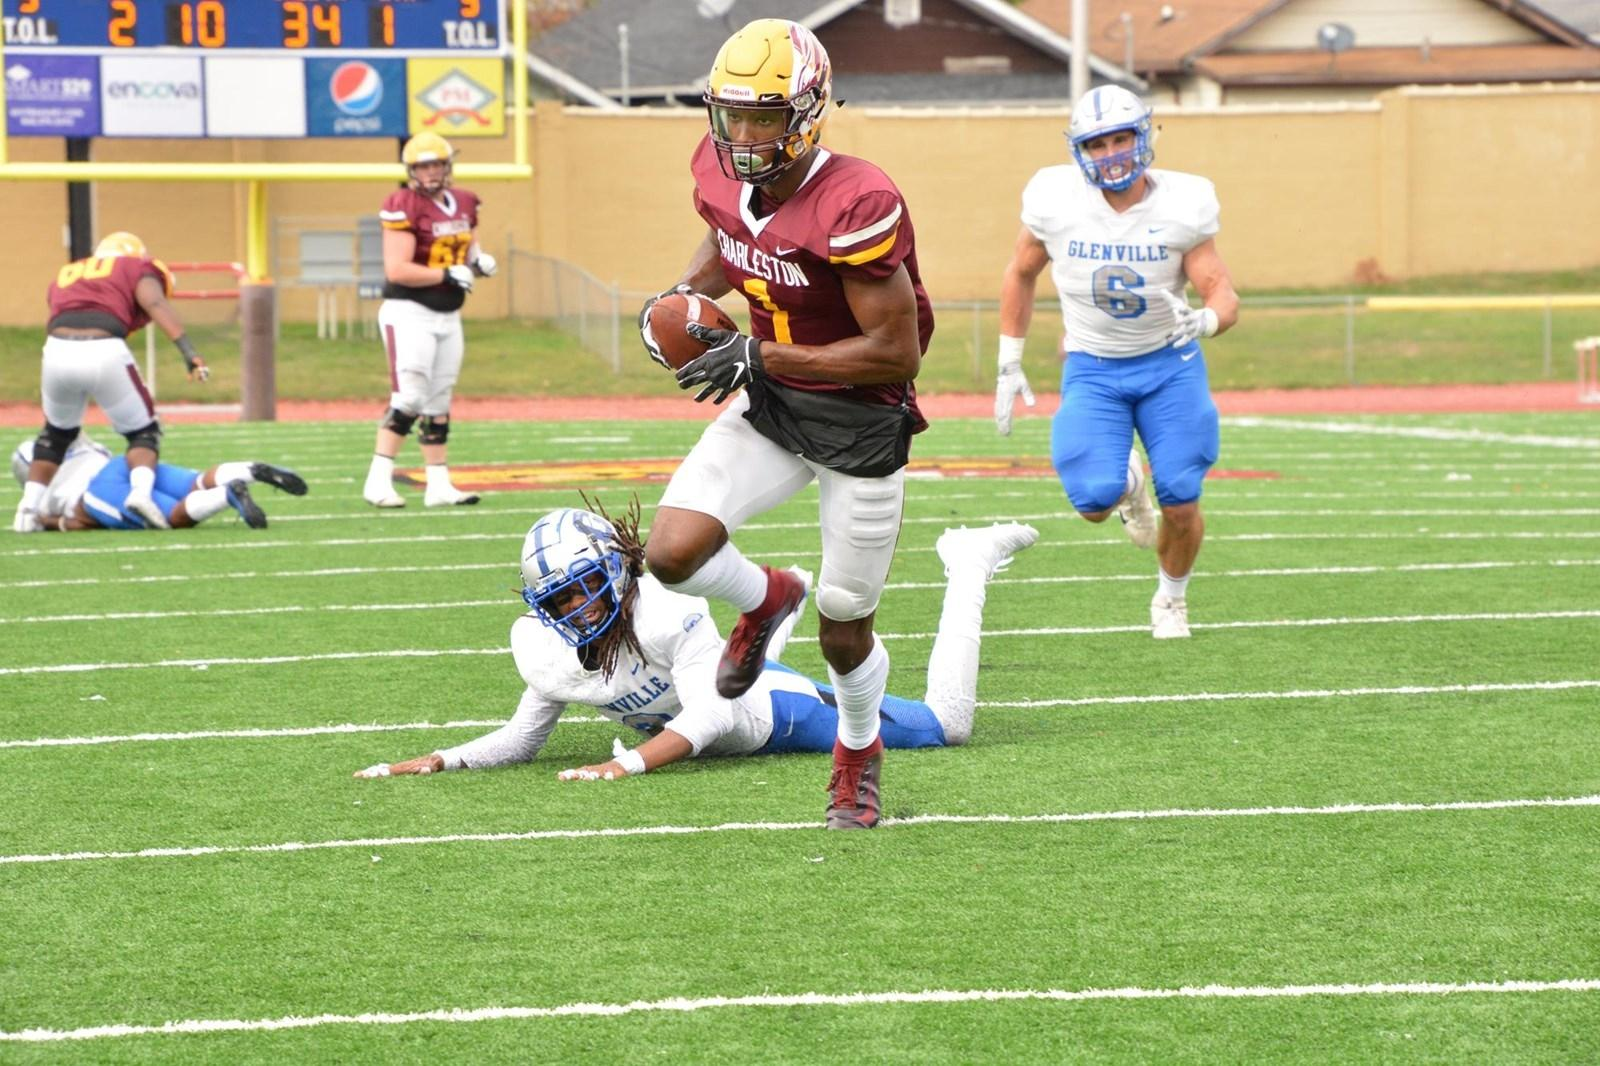 Charleston (WV) wide receiver Mike Strachan